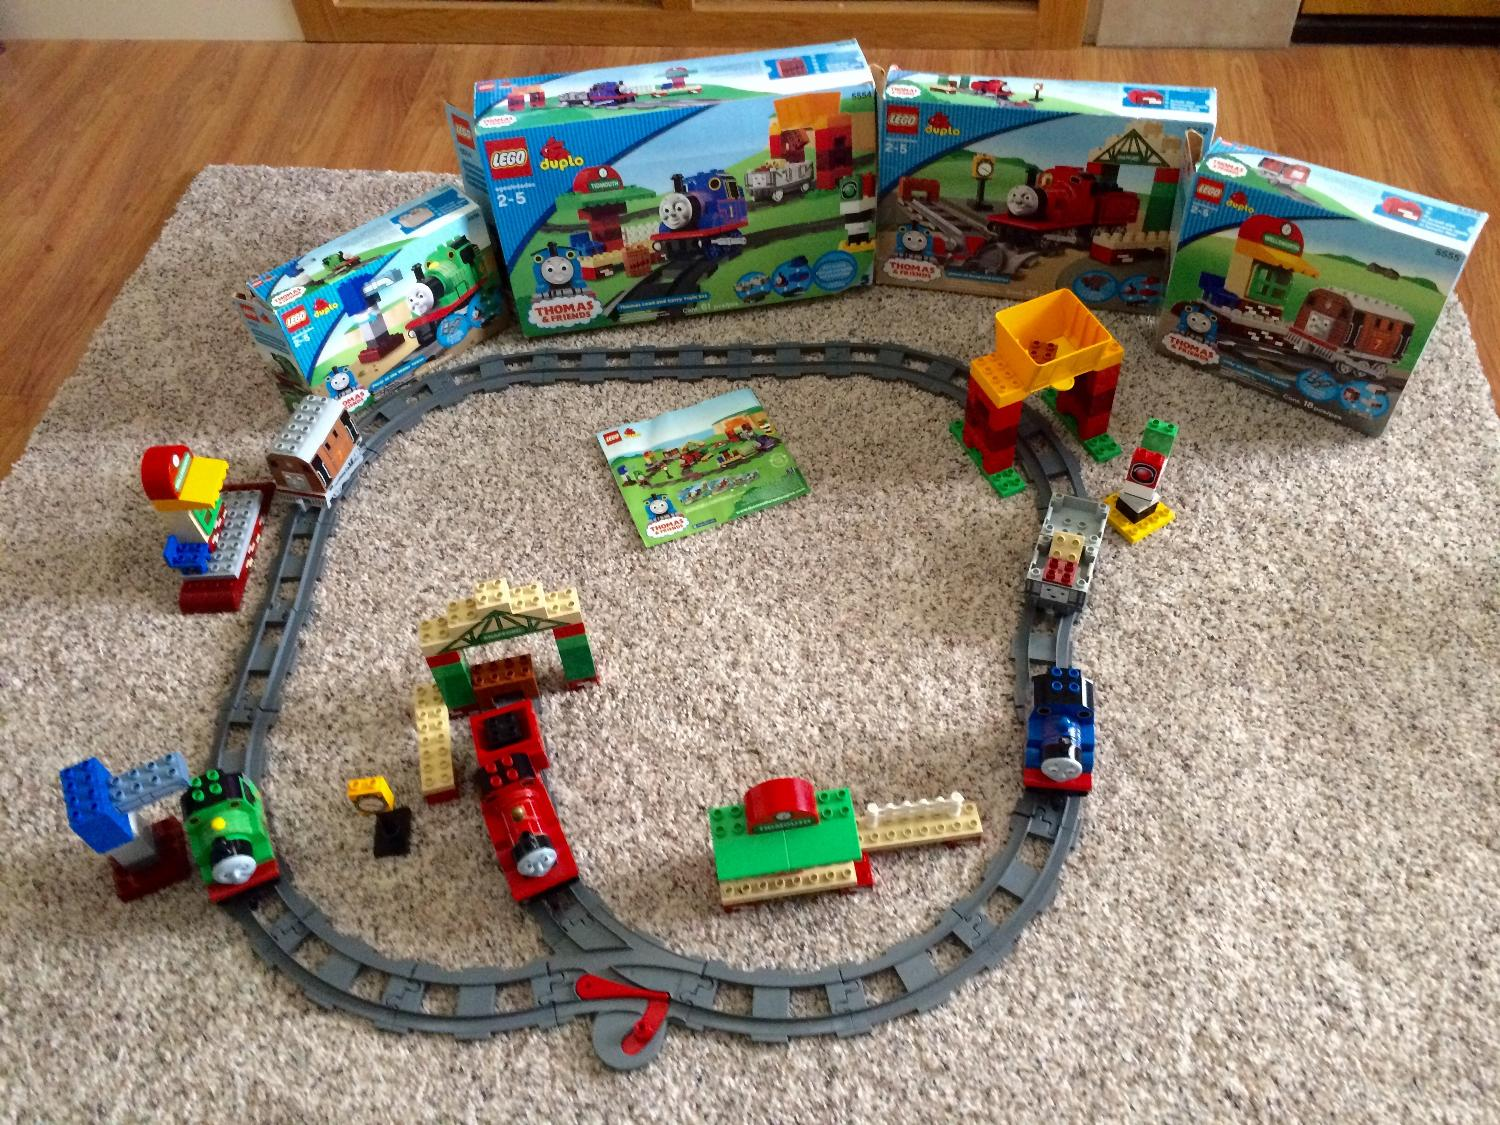 Best Legoduplo Thomas The Tank Engine For Sale In Orangevale